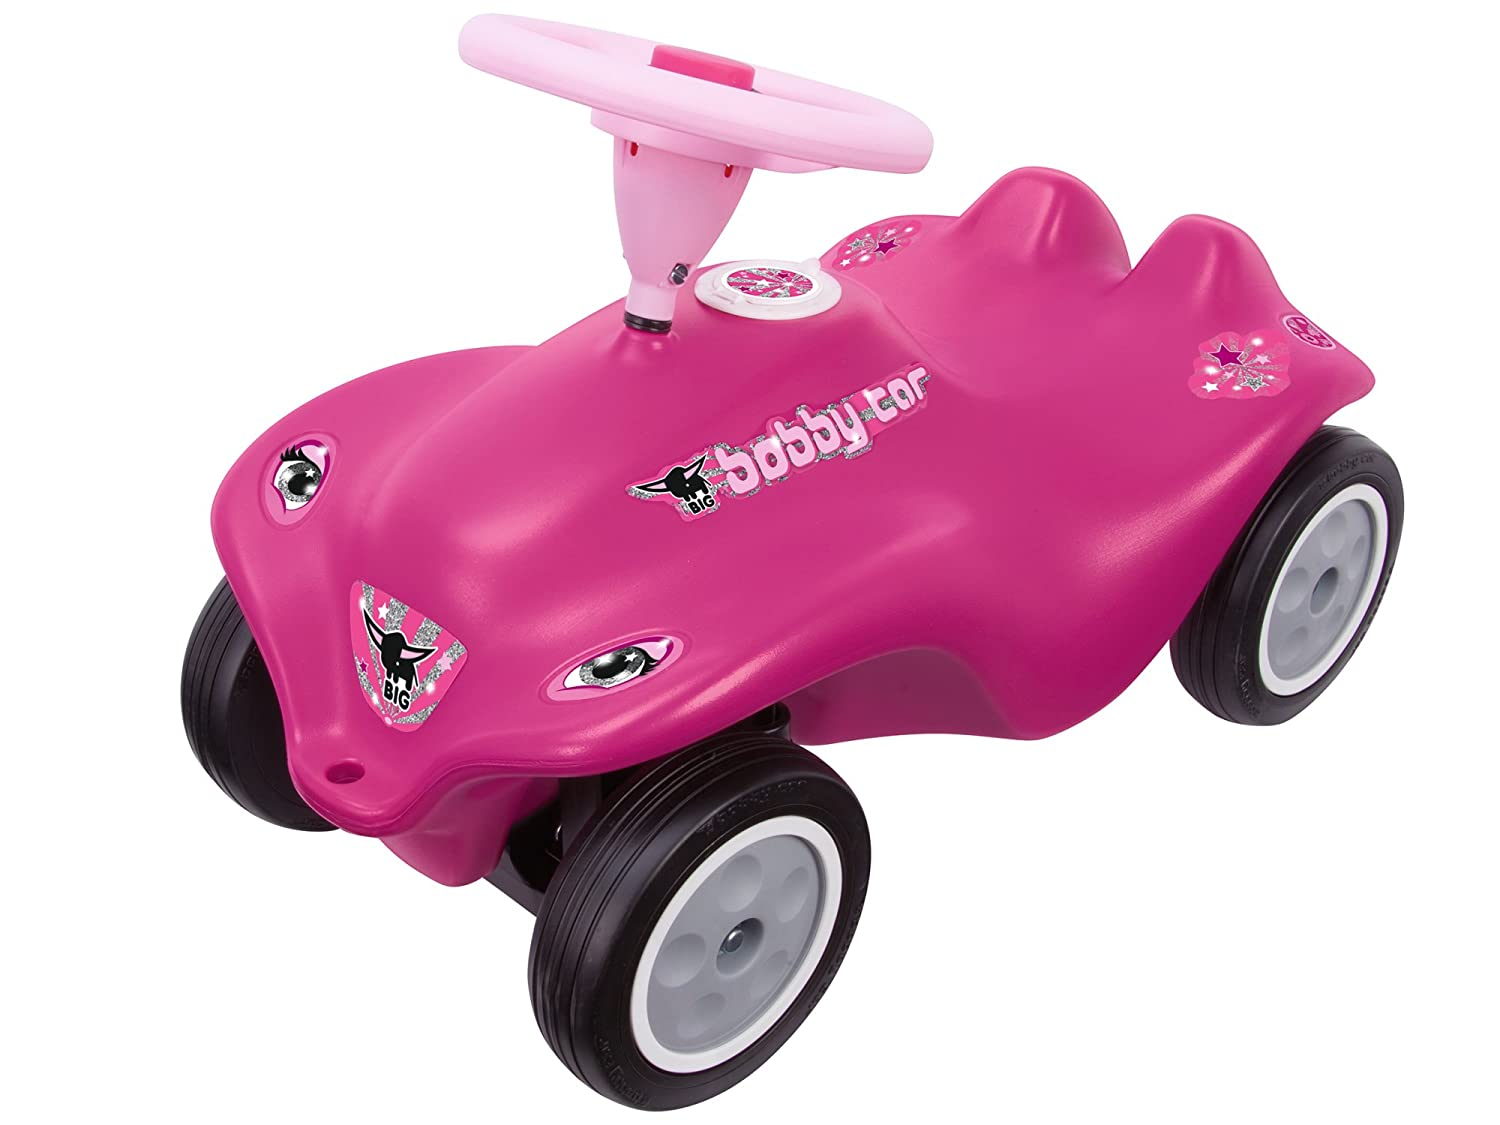 Bobby Car Classic oder New - Big New Bobby Car Rosa